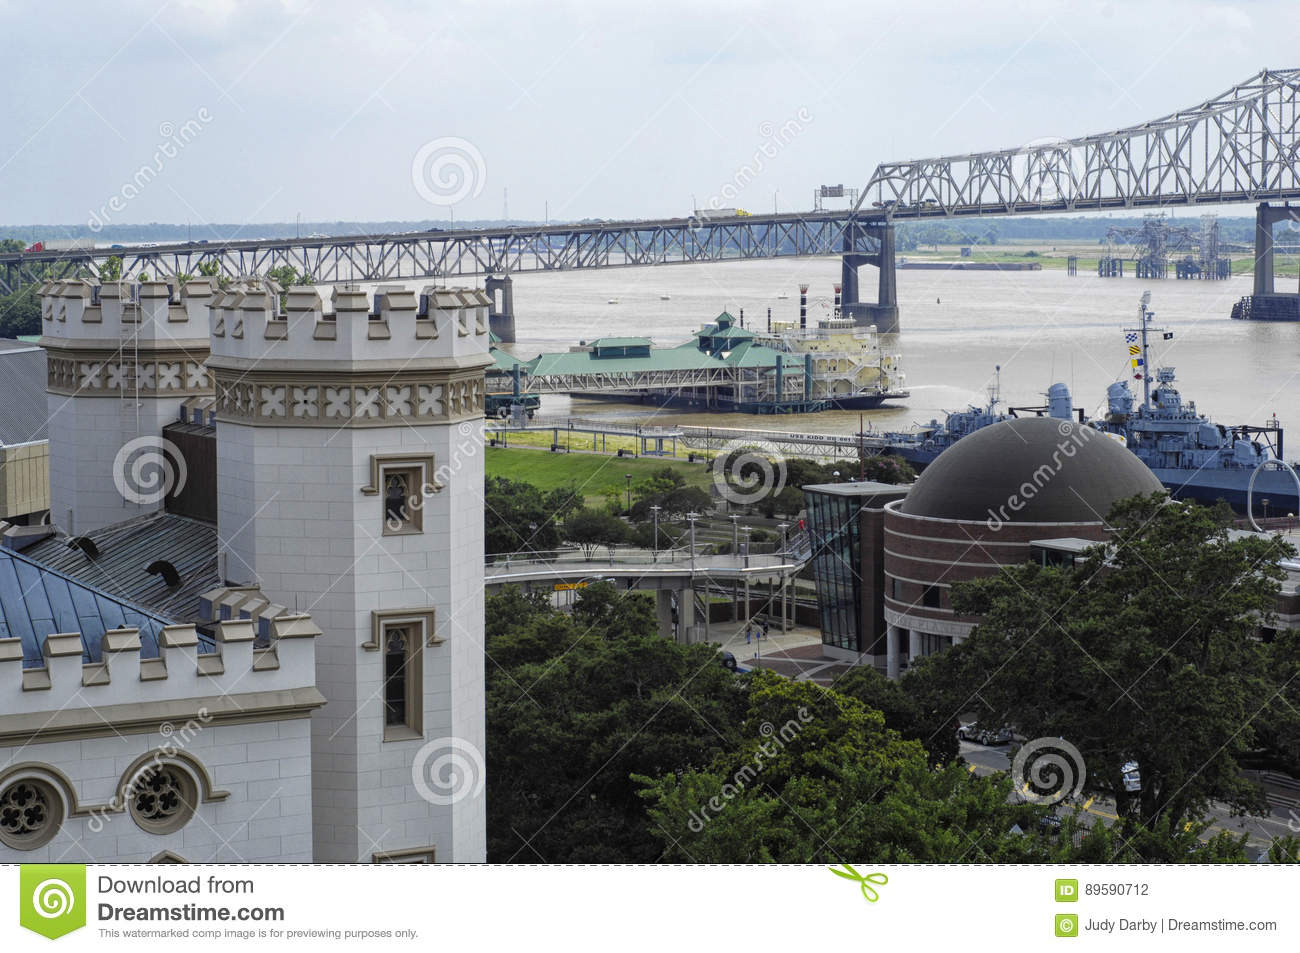 Baton Rouge, LA waterfront with Old State Capitol